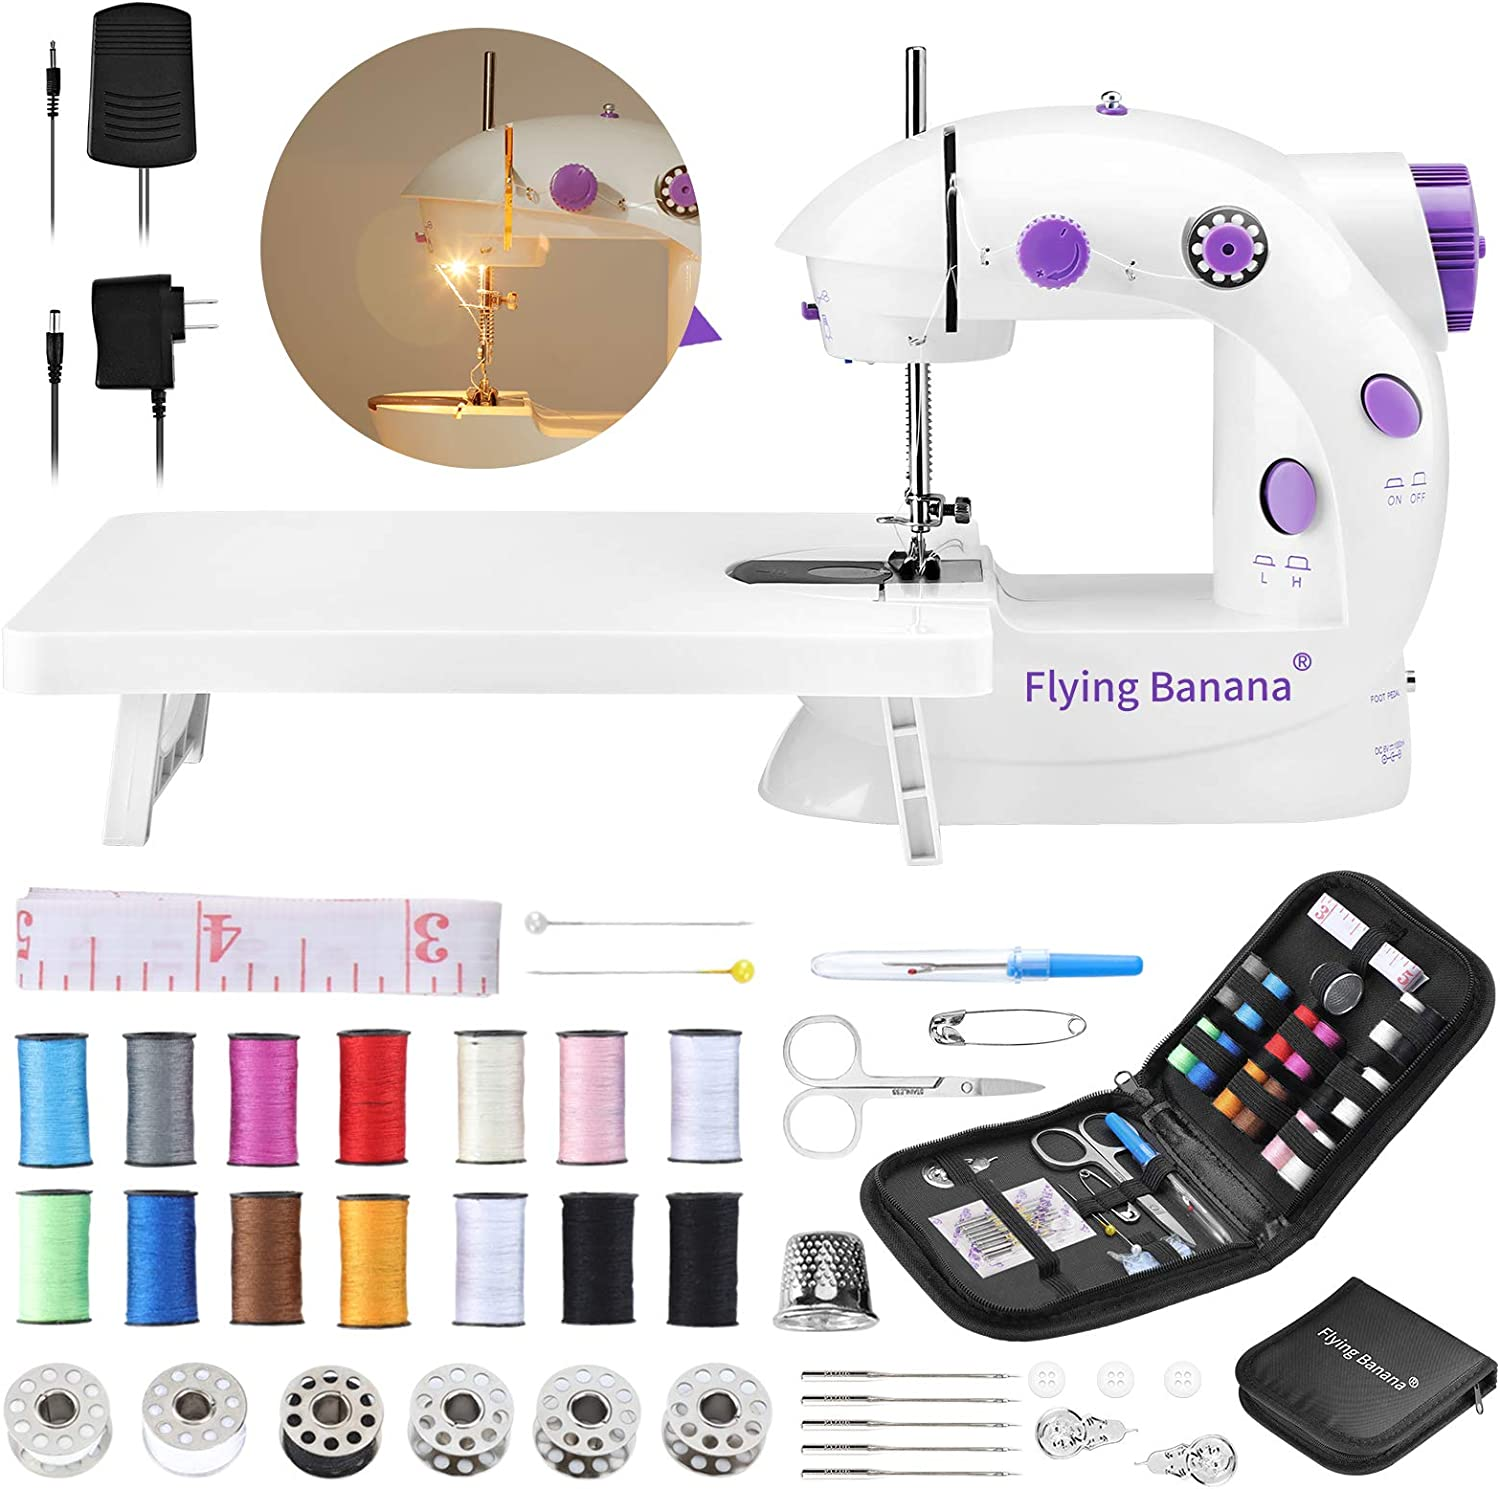 Easy Sewing Machine for Beginner Kid, Electric Portable Sewing Machine Lightweight, Small Household Sewing Handheld Tool with Upgrade with Wewing Kit Extension Table Foot Pedal for Home DIY Project.